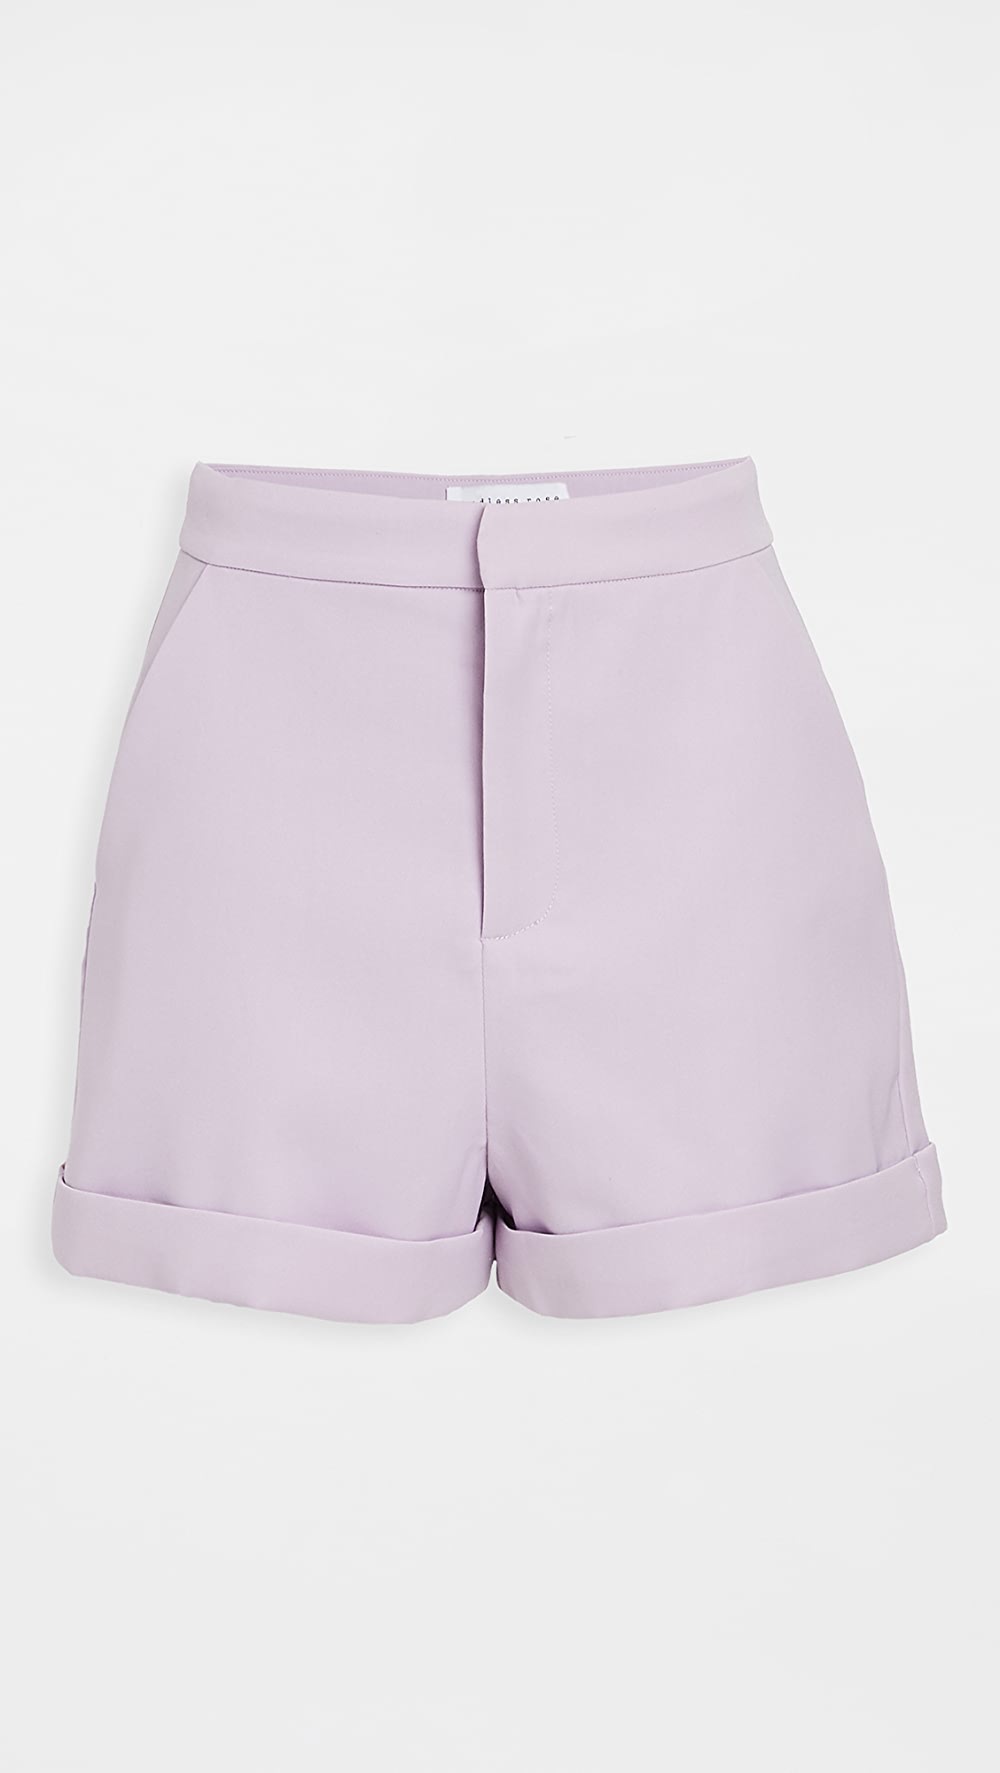 Alert Endless Rose - Tailored Shorts Fine Quality